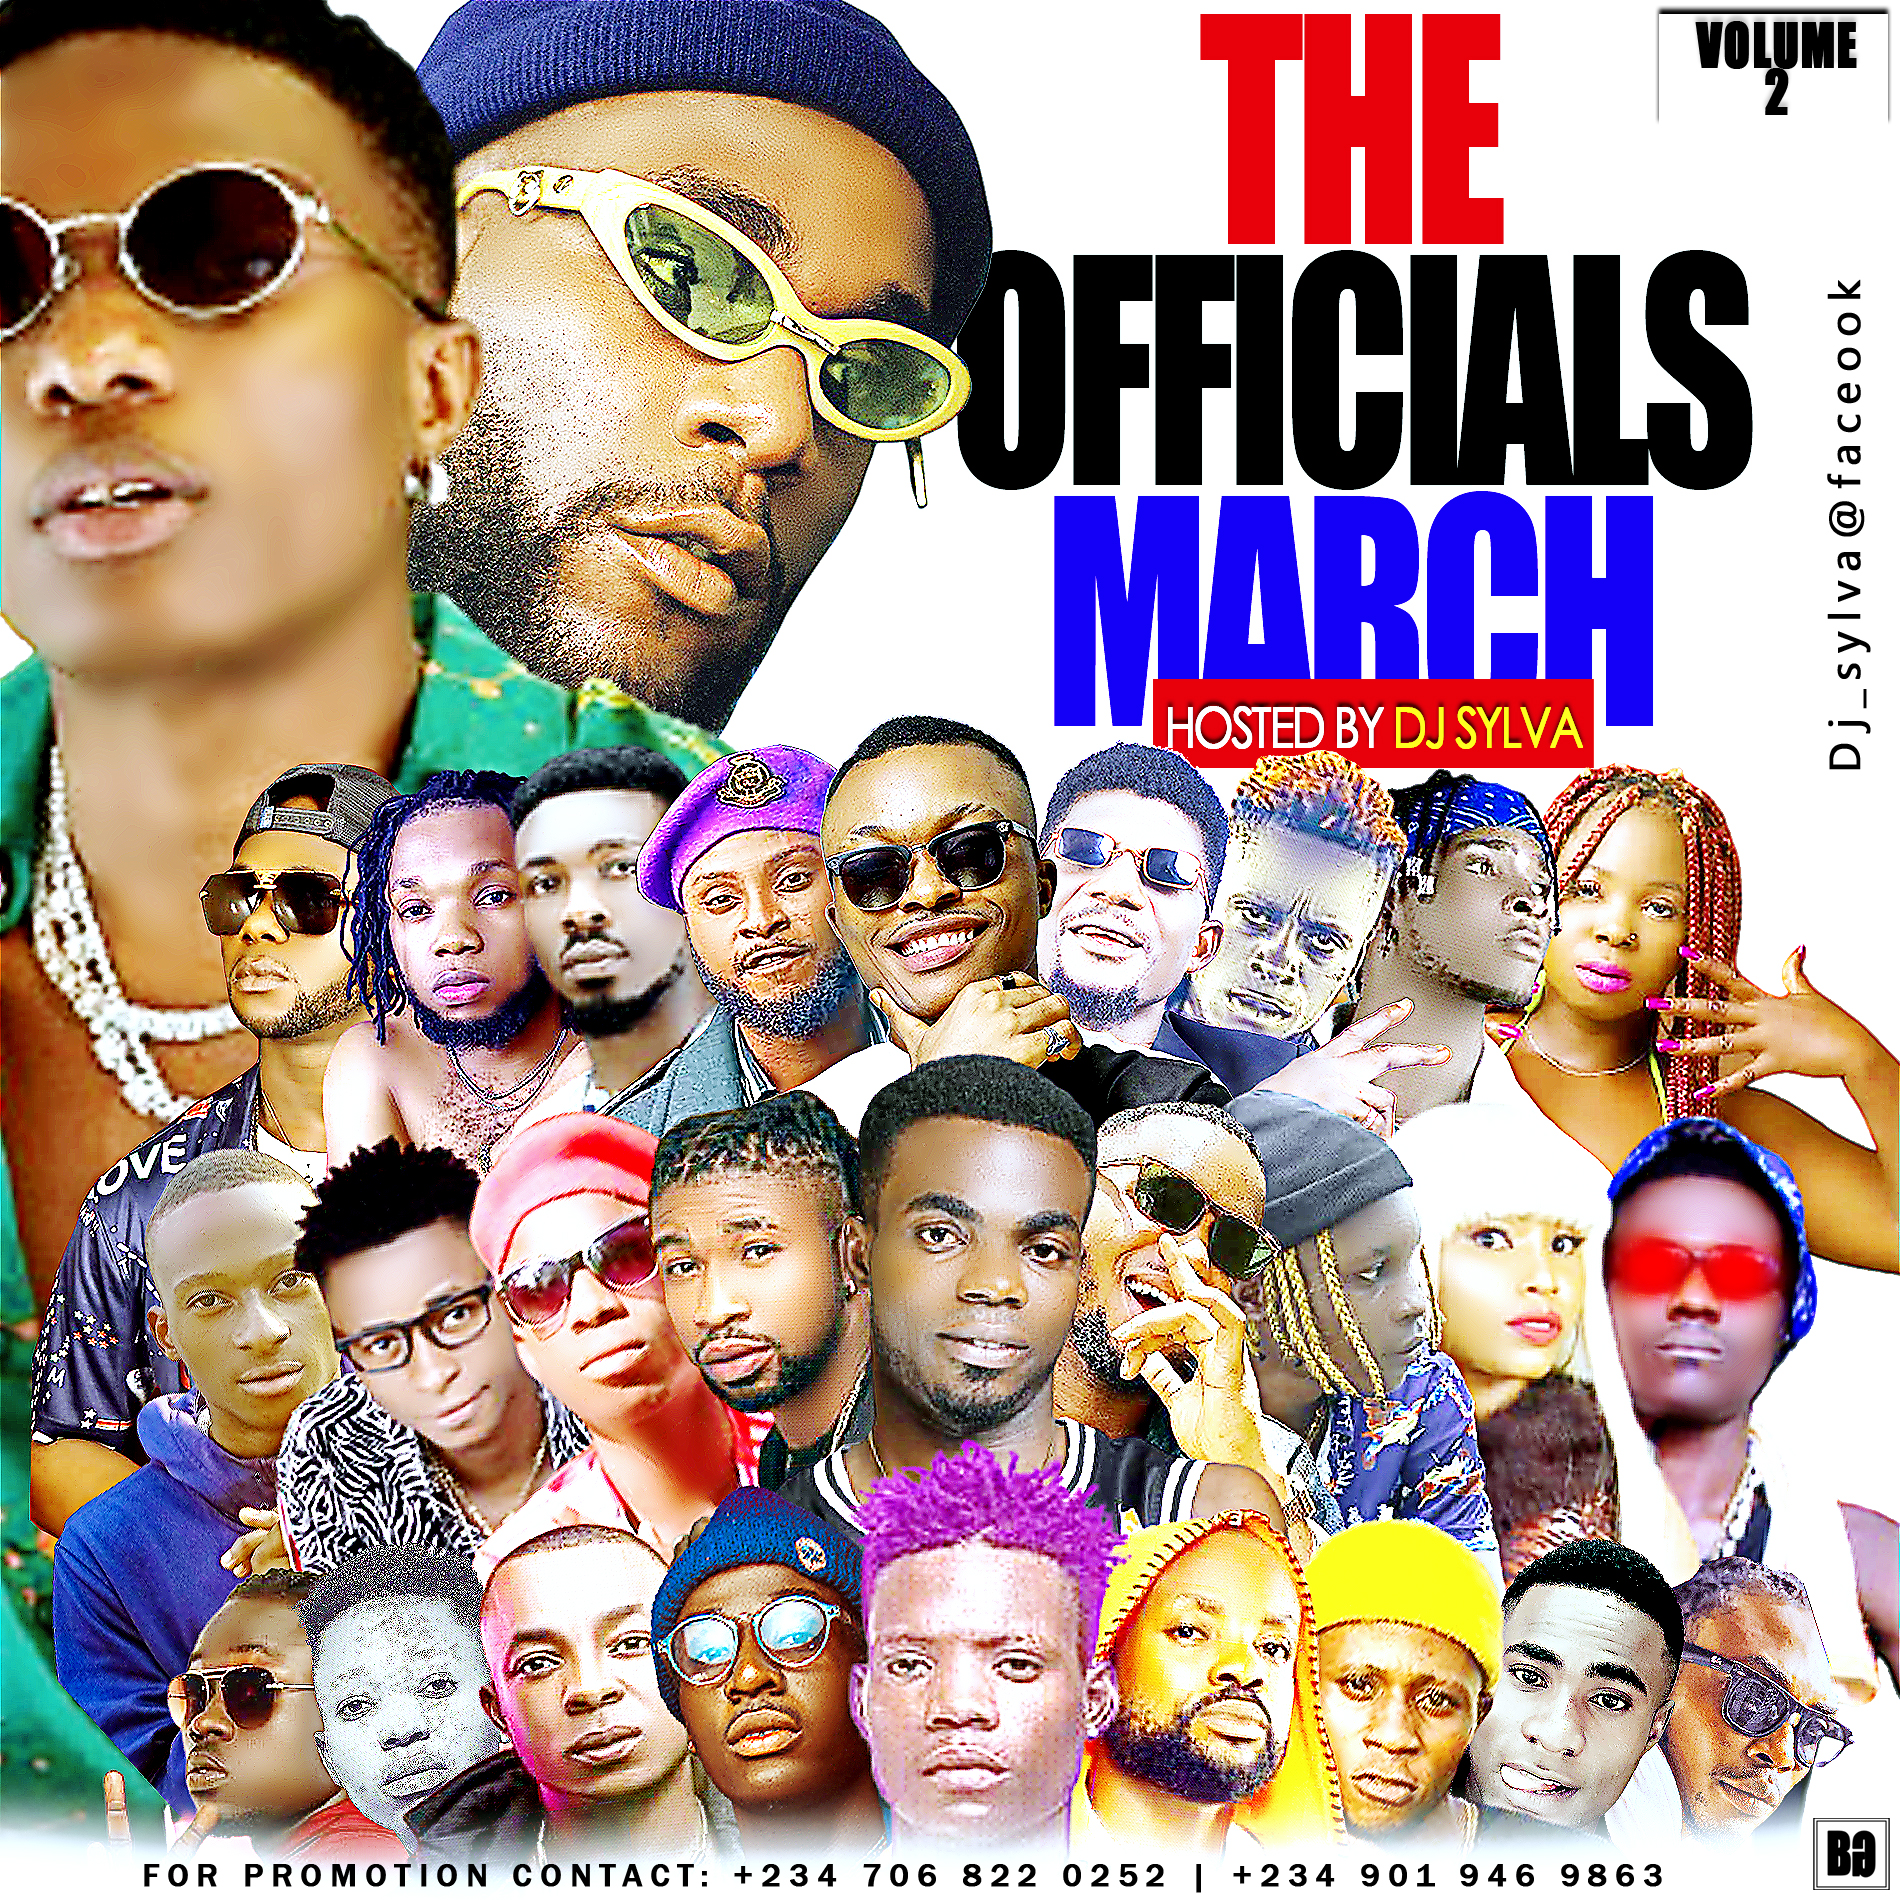 DOWNLOAD MIXTAPE: THE OFFICIALS MARCH HOSTED BY DJ SYLVA